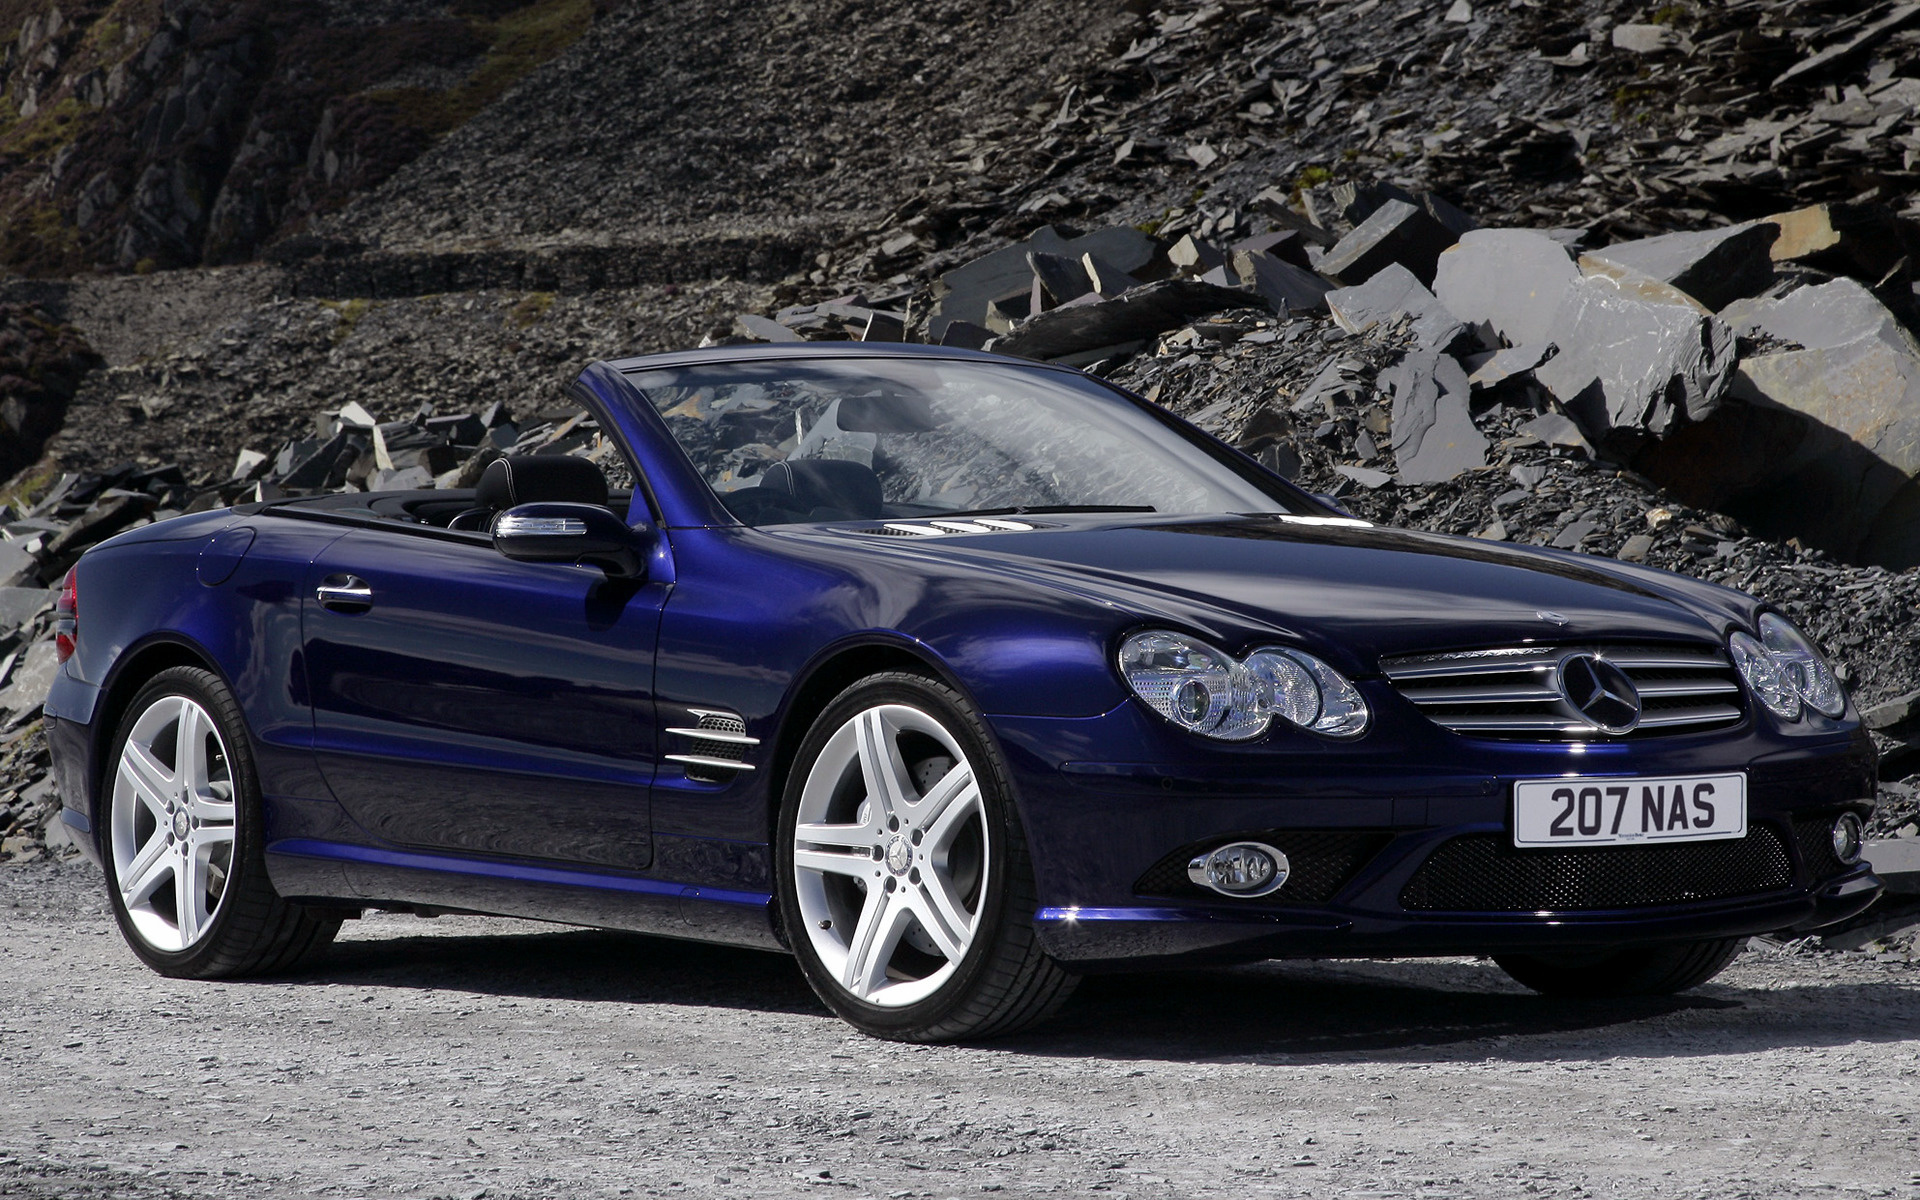 2006 Mercedes-Benz SL-Class AMG Styling (UK) - Wallpapers